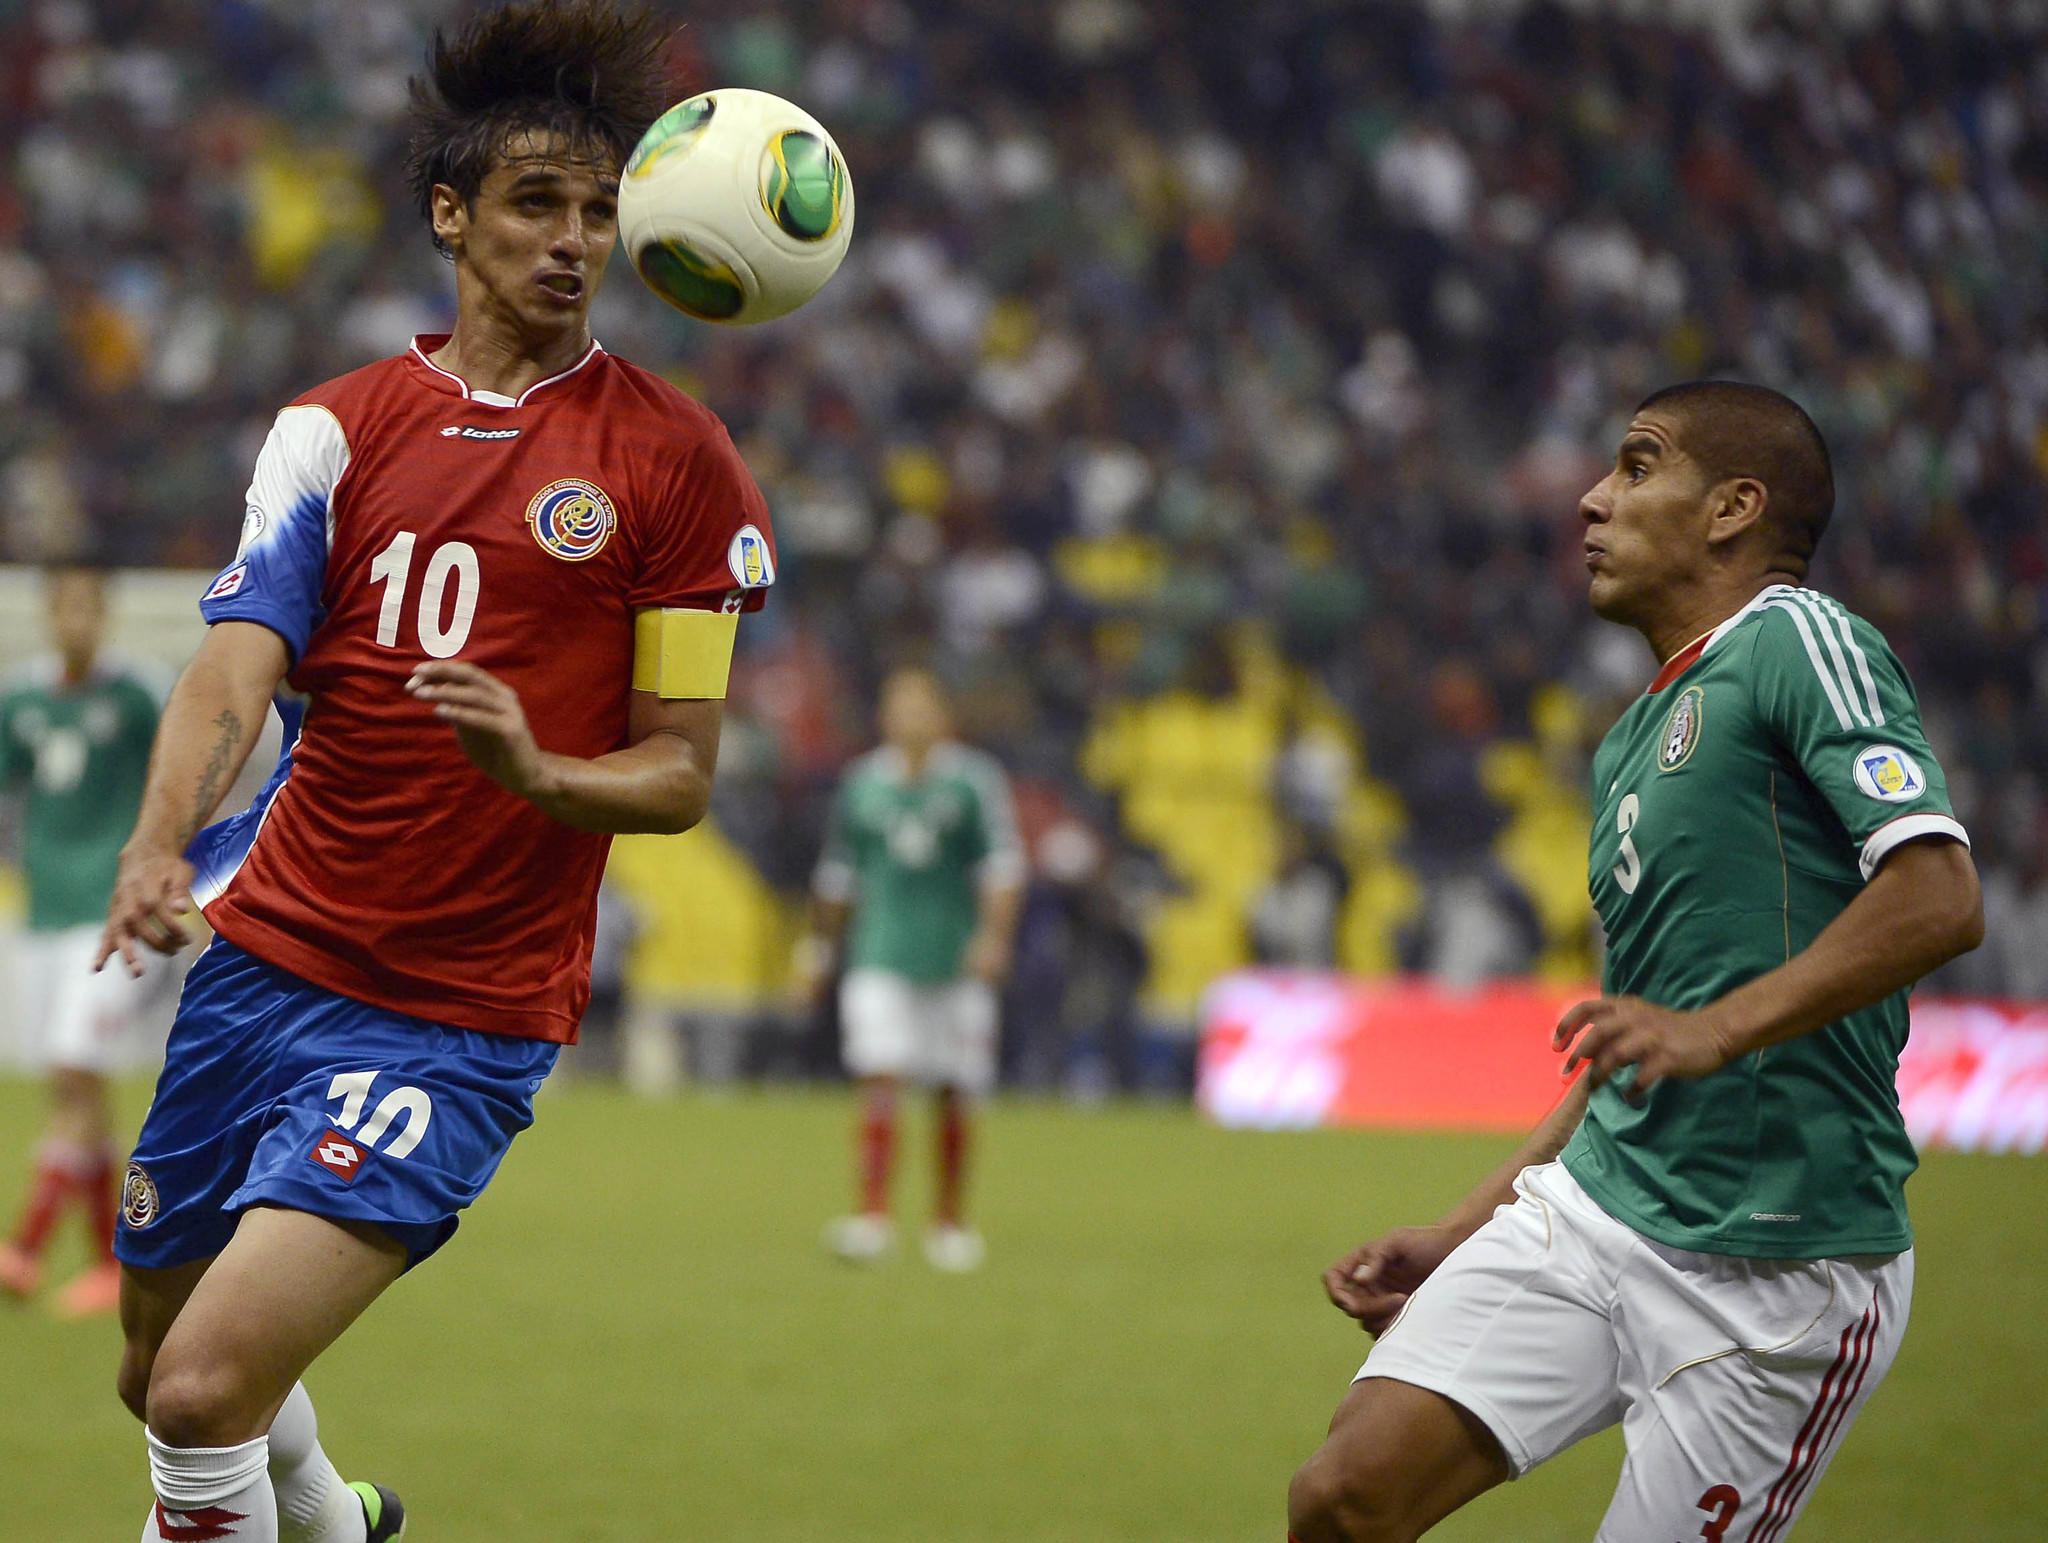 Costa Rica's player Bryan Ruiz (L) tries to control the ball next to Mexico's Carlos Salcido during their FIFA World Cup Brazil 2014 Concacaf qualifier match at the Azteca Stadium in Mexico City on June 11, 2013.